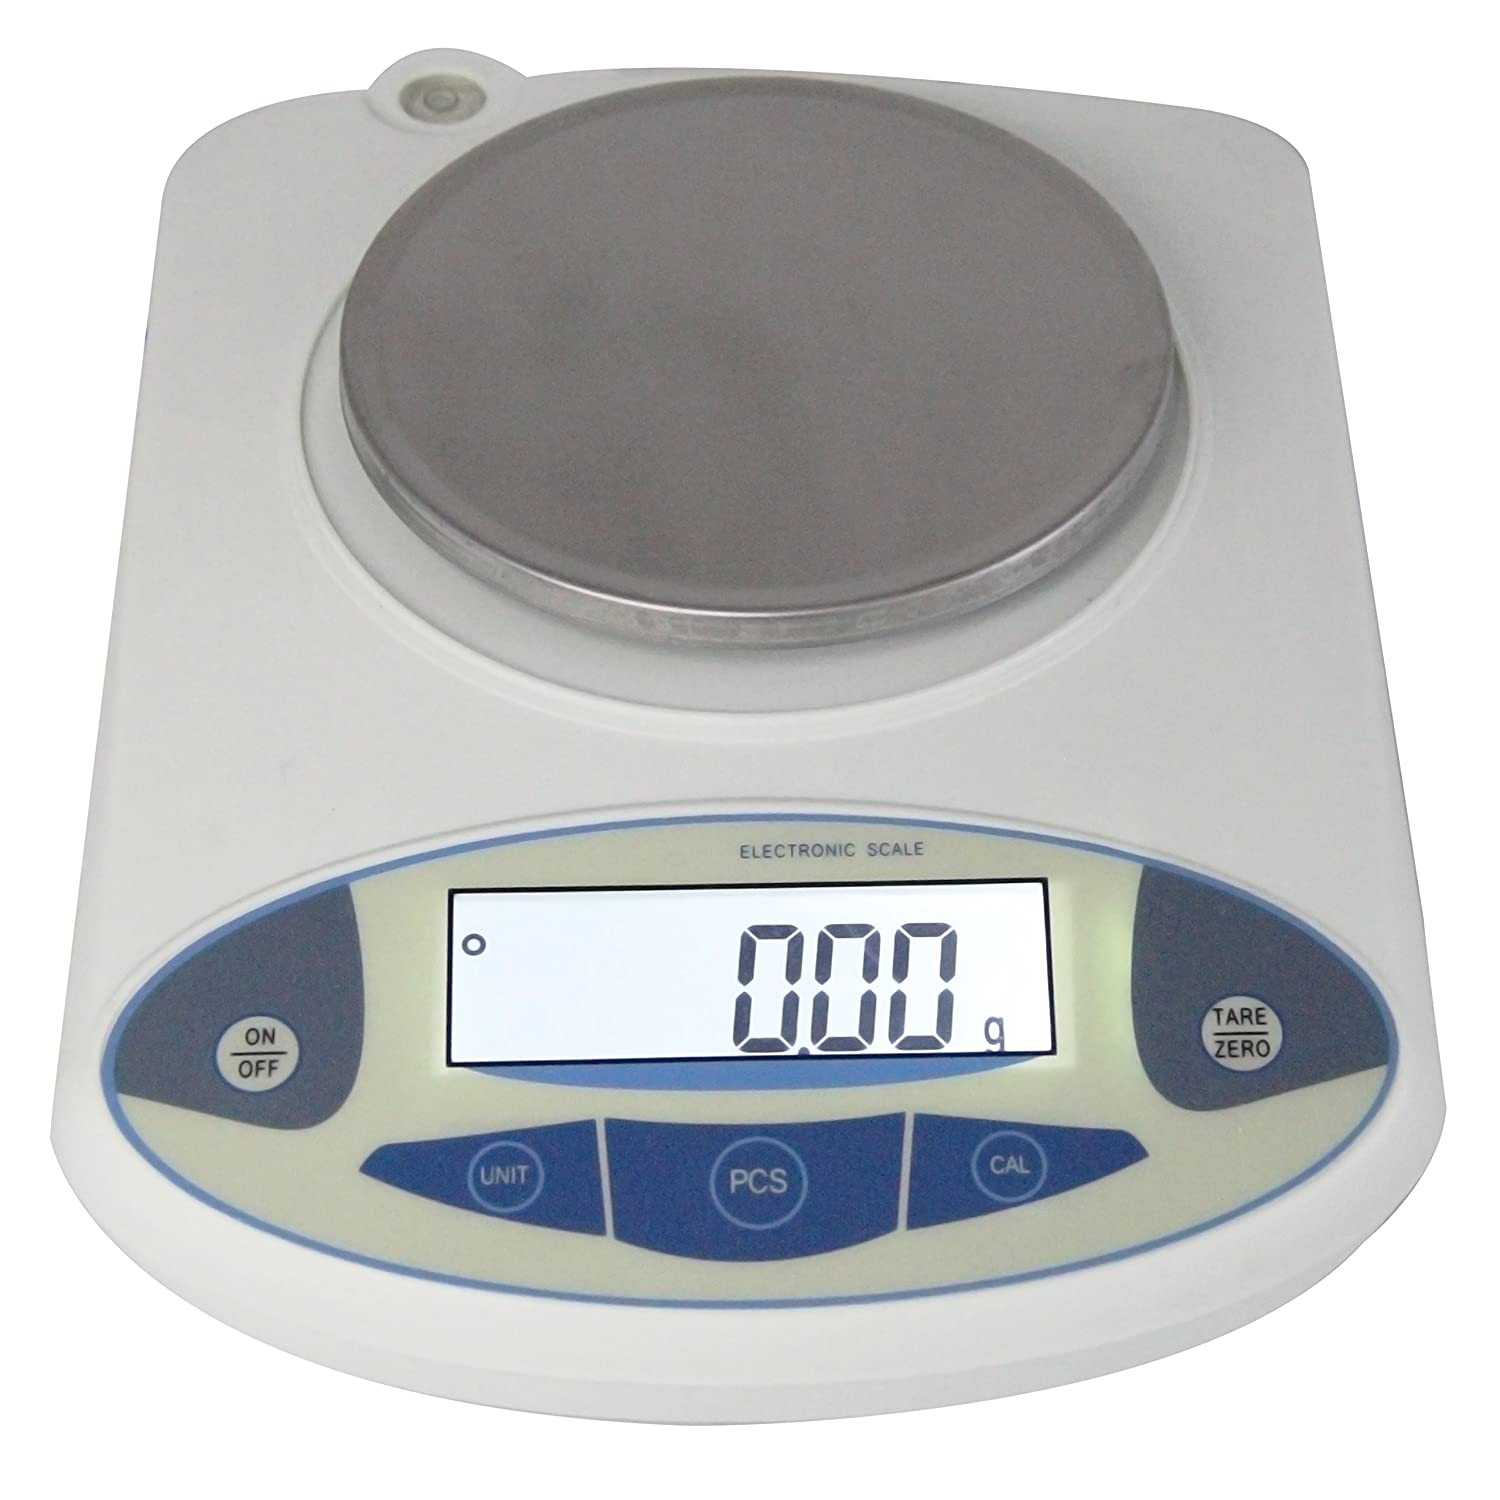 0.01 Analytical Electronic Balance Lab Scale Precision Jewelry Scales Kitchen High Precision Lab Digital Weighing 0.01g Calibrated /& Ready to use /… CGOLDENWALL3000g